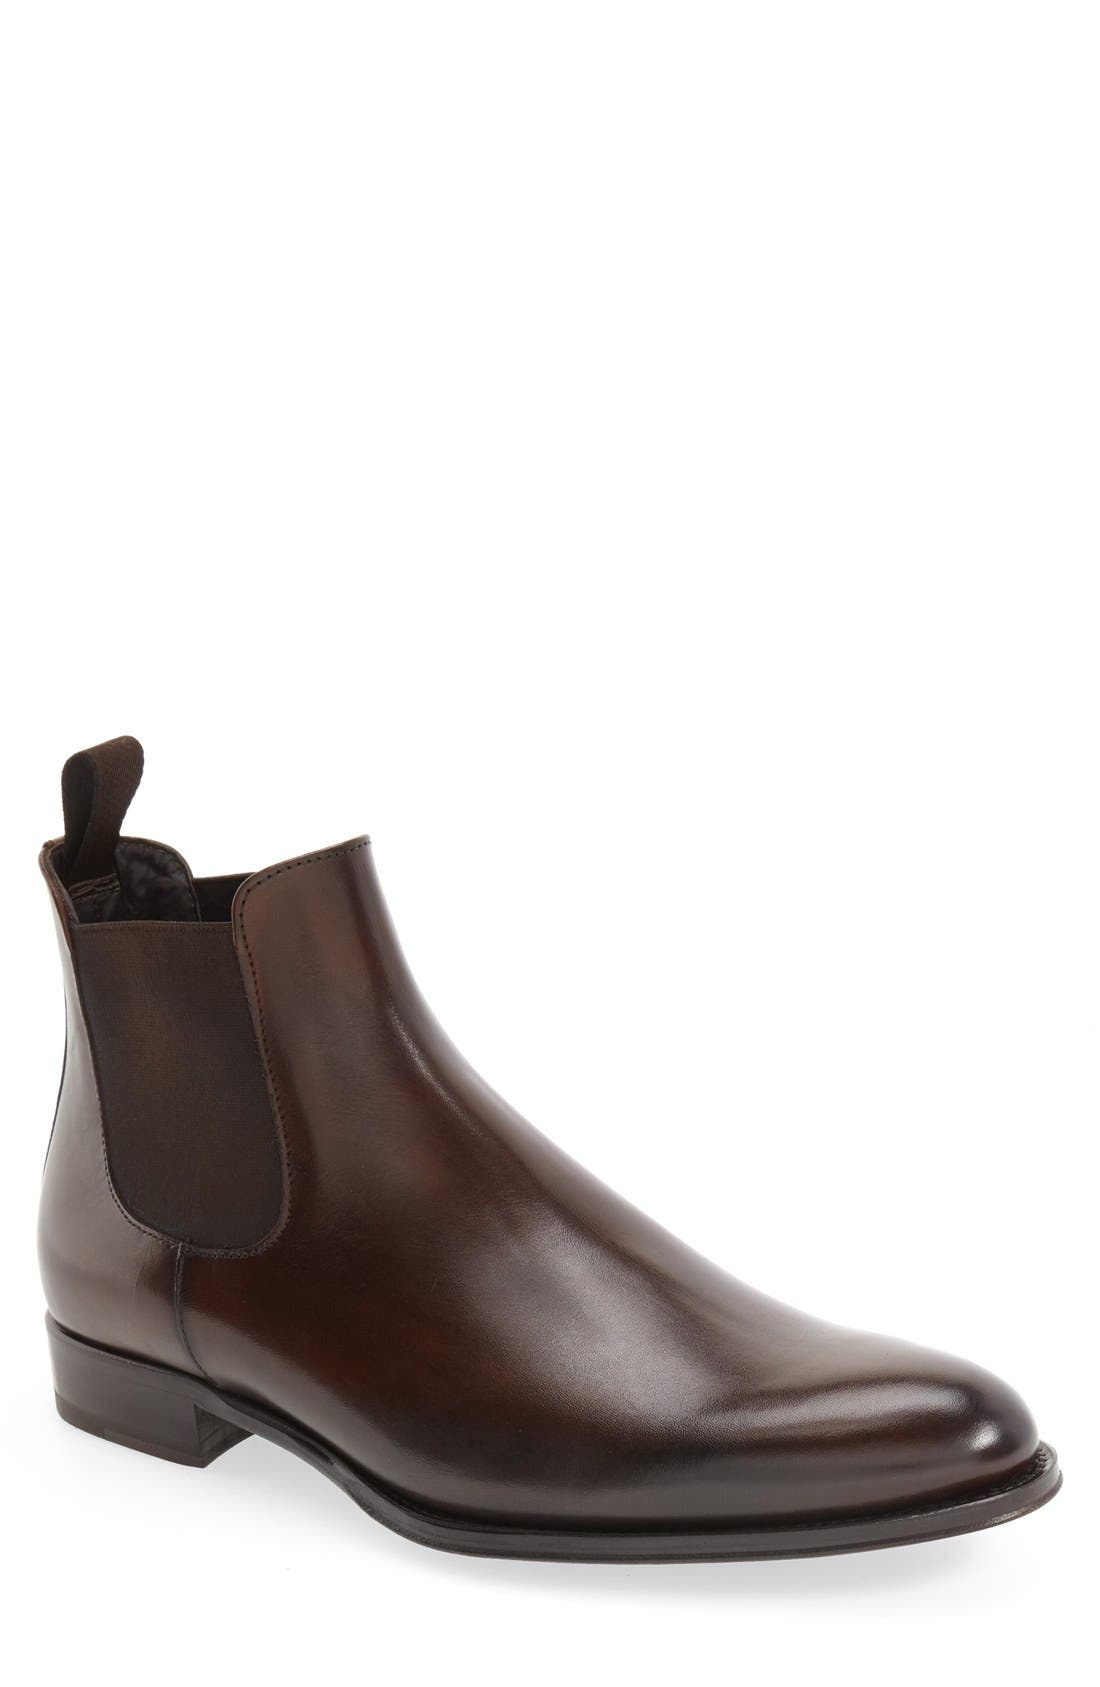 Alternate Image 1 Selected - To Boot New York Toby Chelsea Boot (Men)